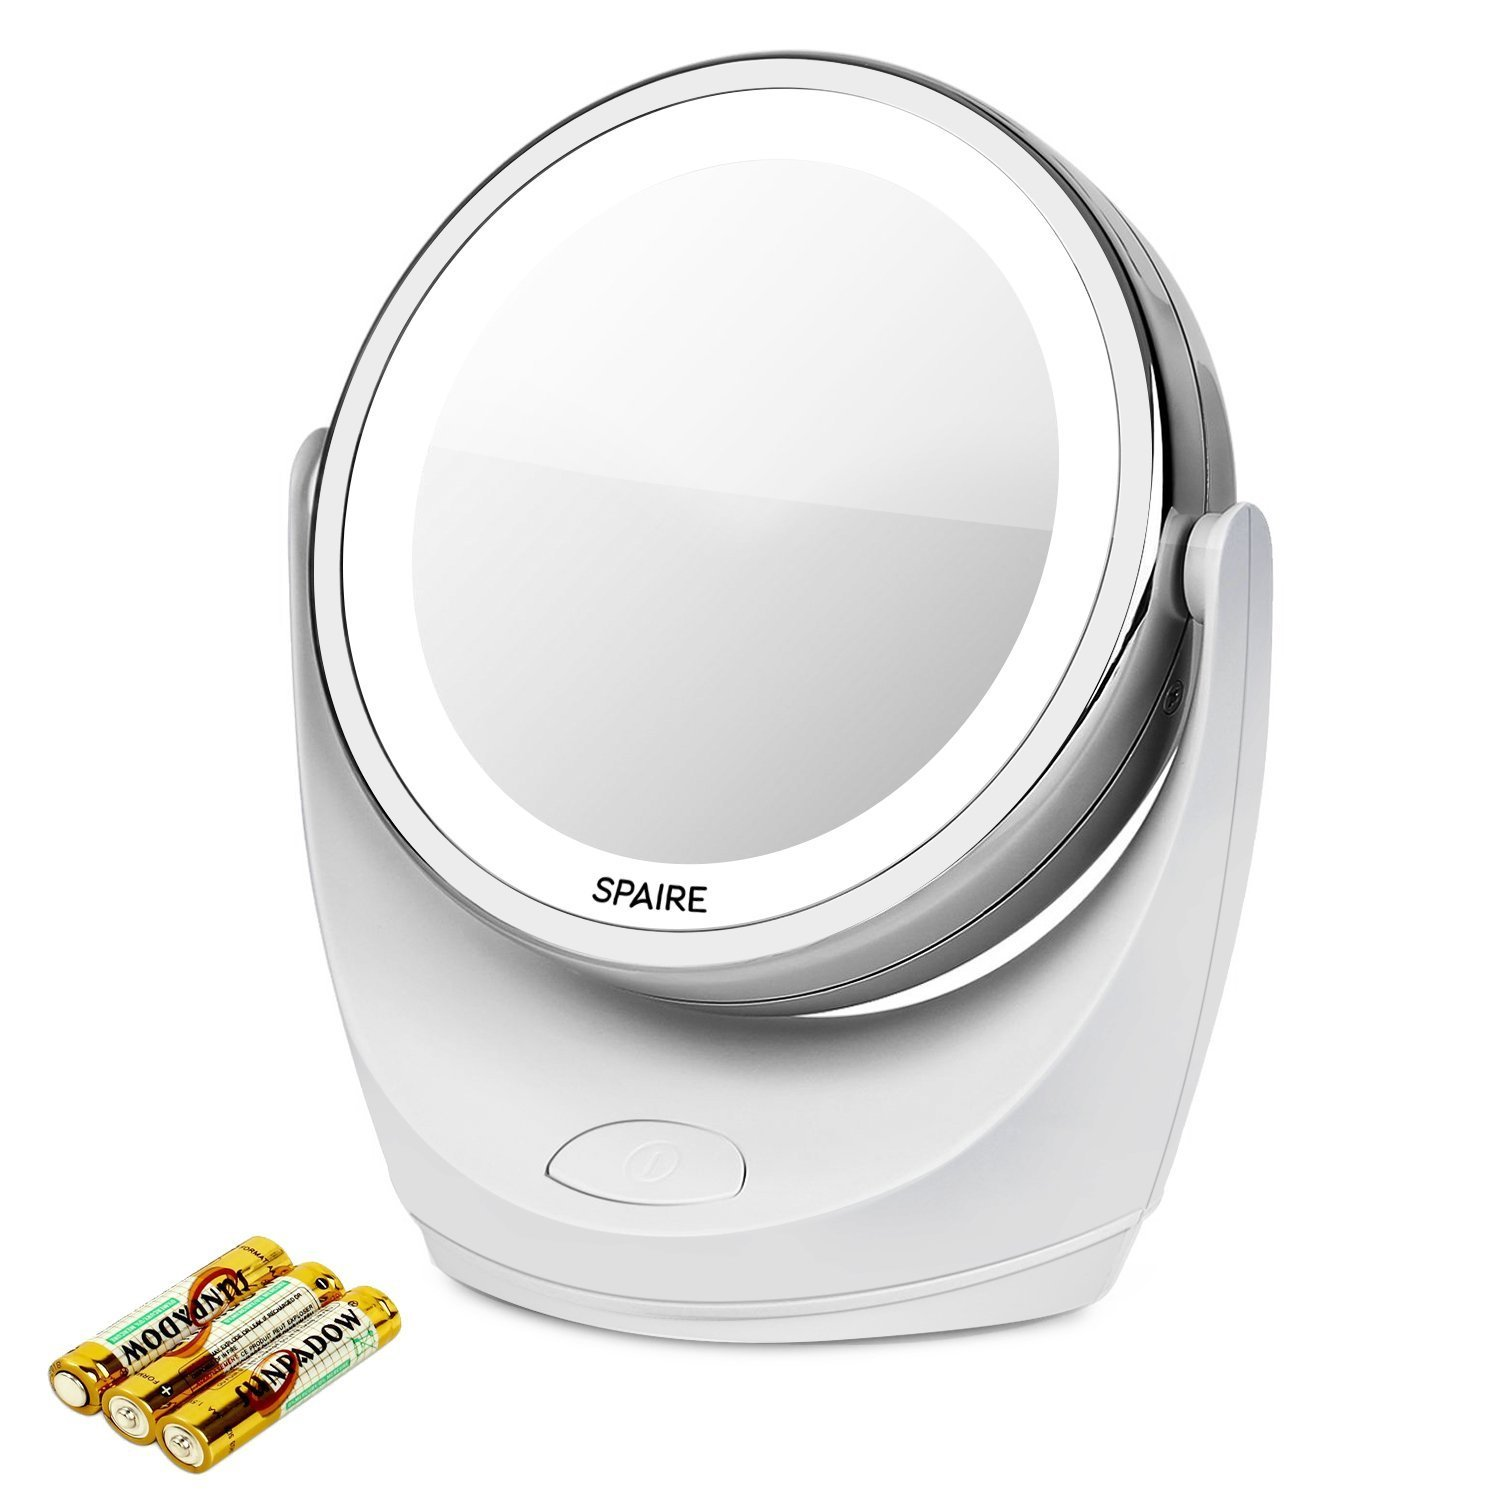 Makeup Mirror, USB Rechargeable Magnifying Cosmetic Tabletop Mirror (7X/1X) Spaire